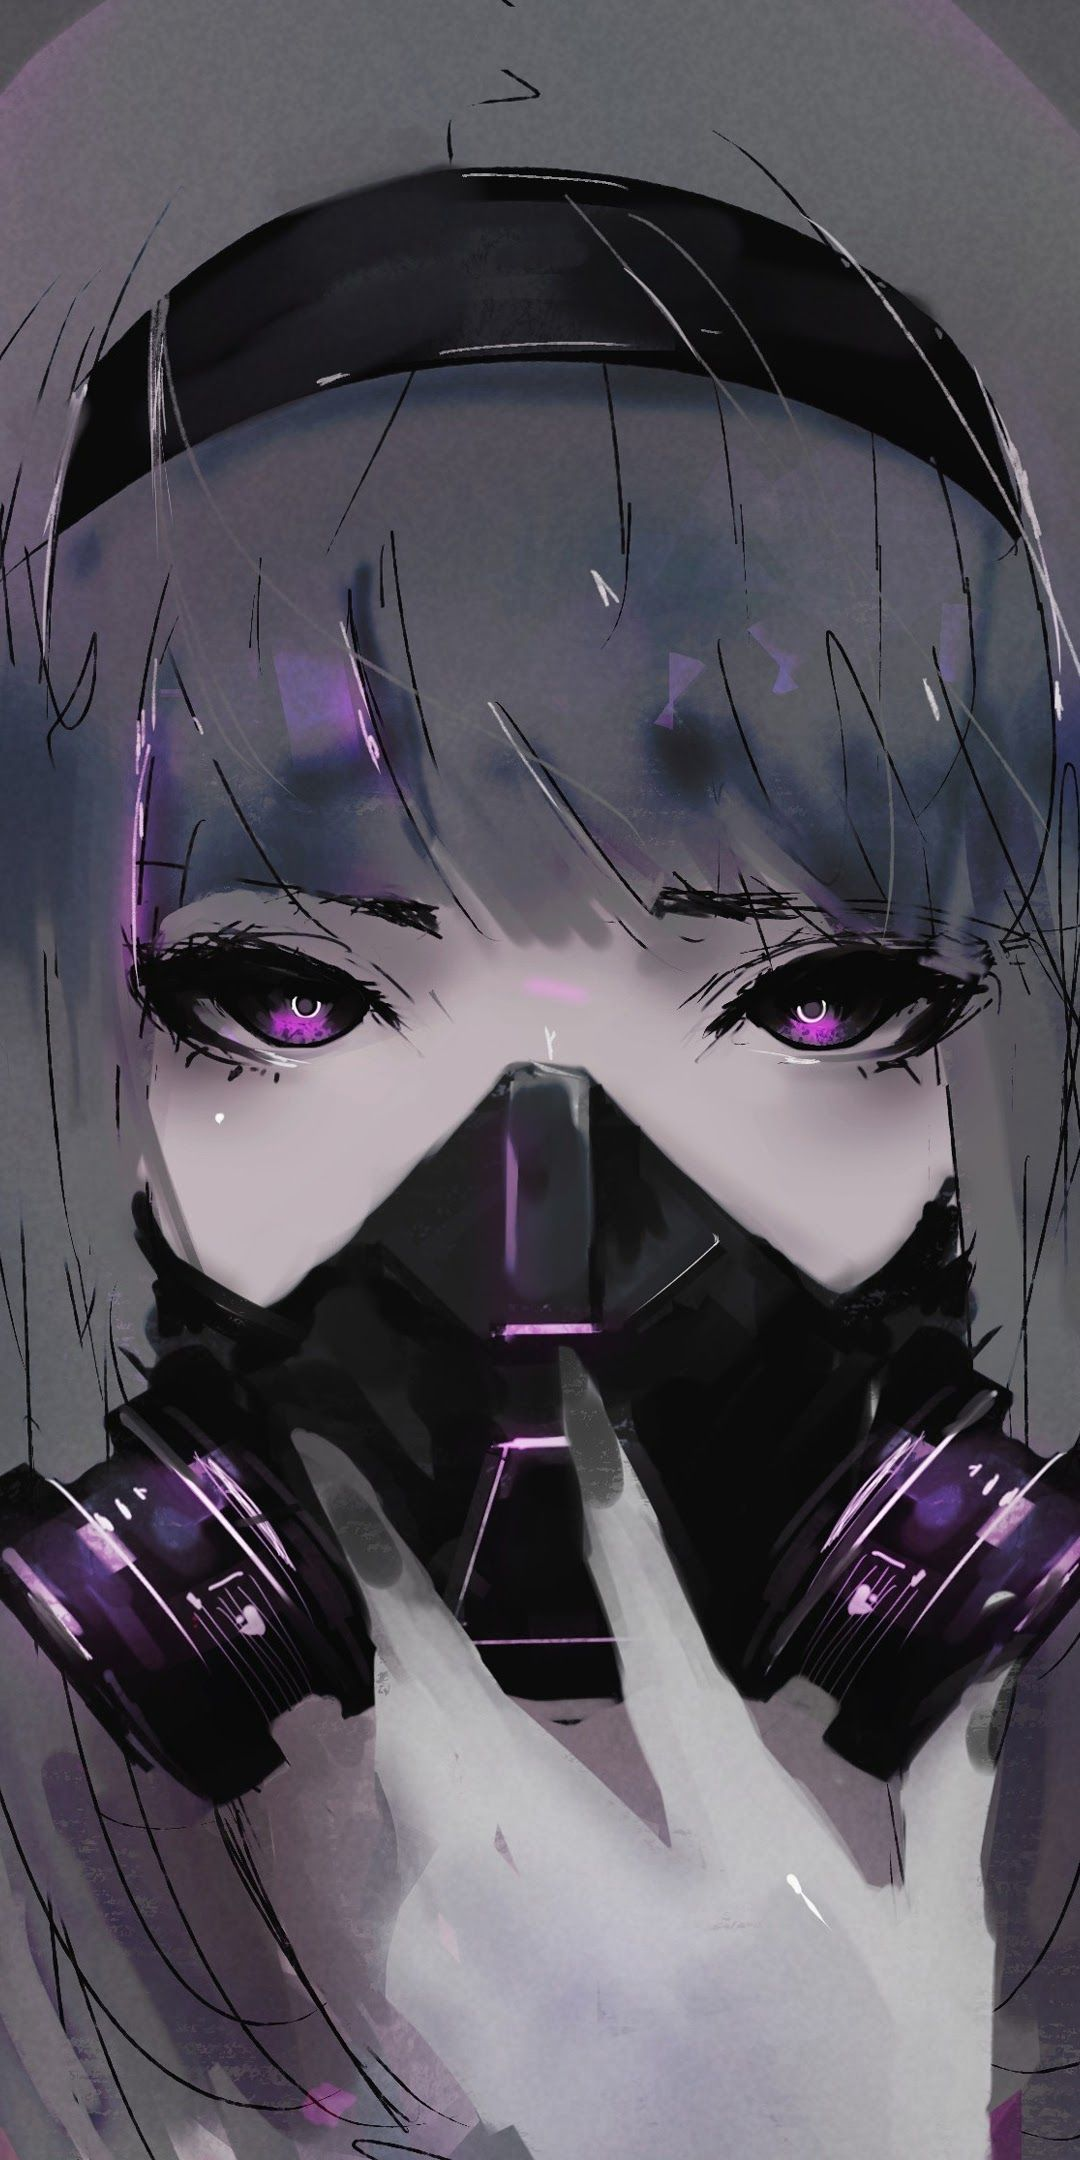 Anime Girl With Mask Wallpapers - Wallpaper Cave